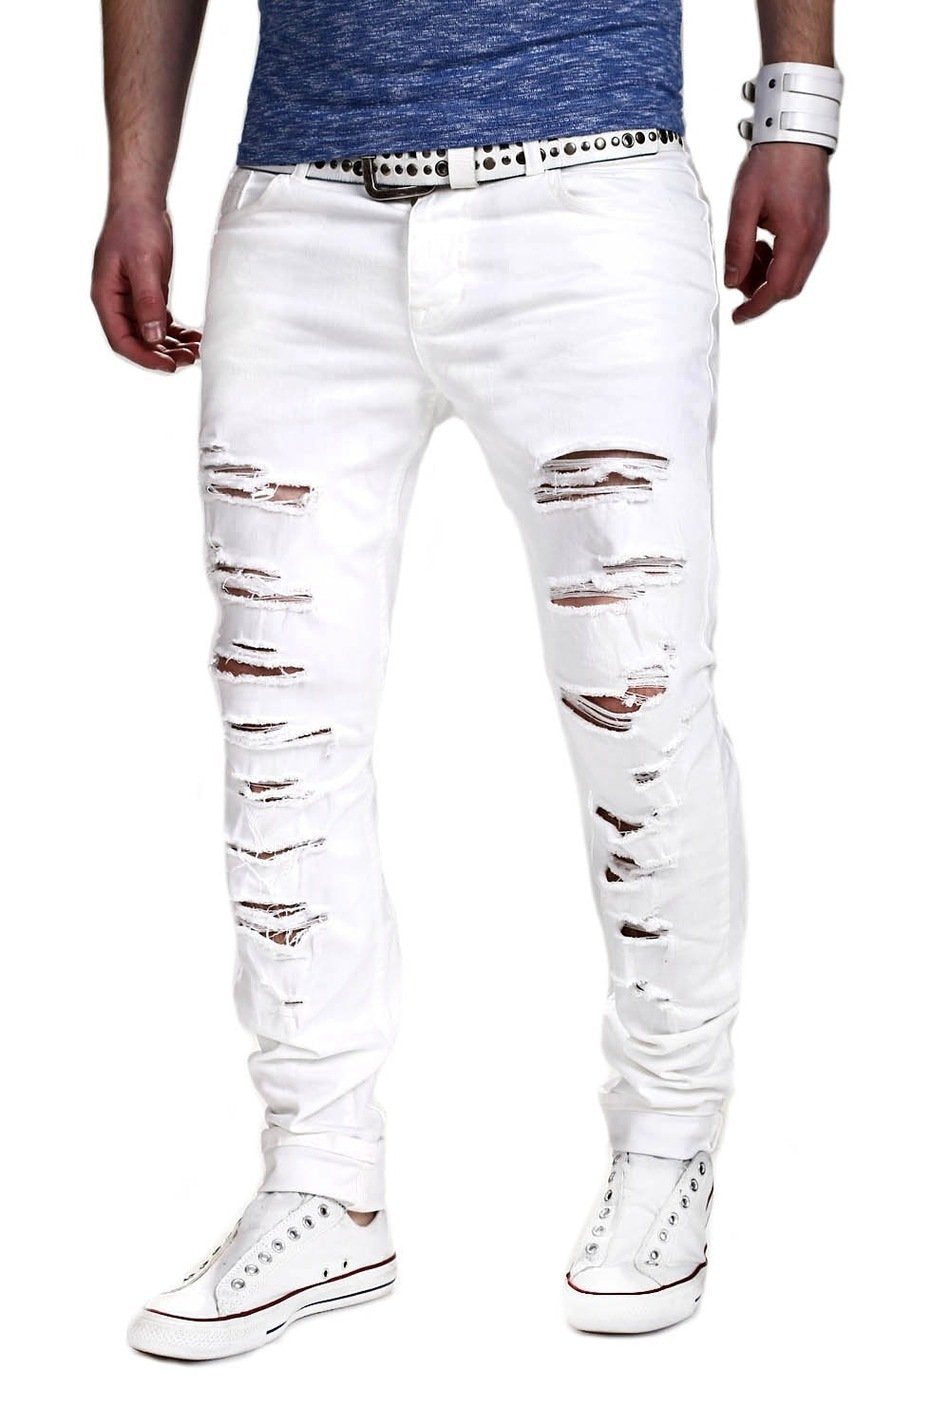 2017 Men s Pants Hole Cut Slacks Knee with Zipper Foot Stretch Trousers  Ripped Jeans White Skinny 675a57dbdf86